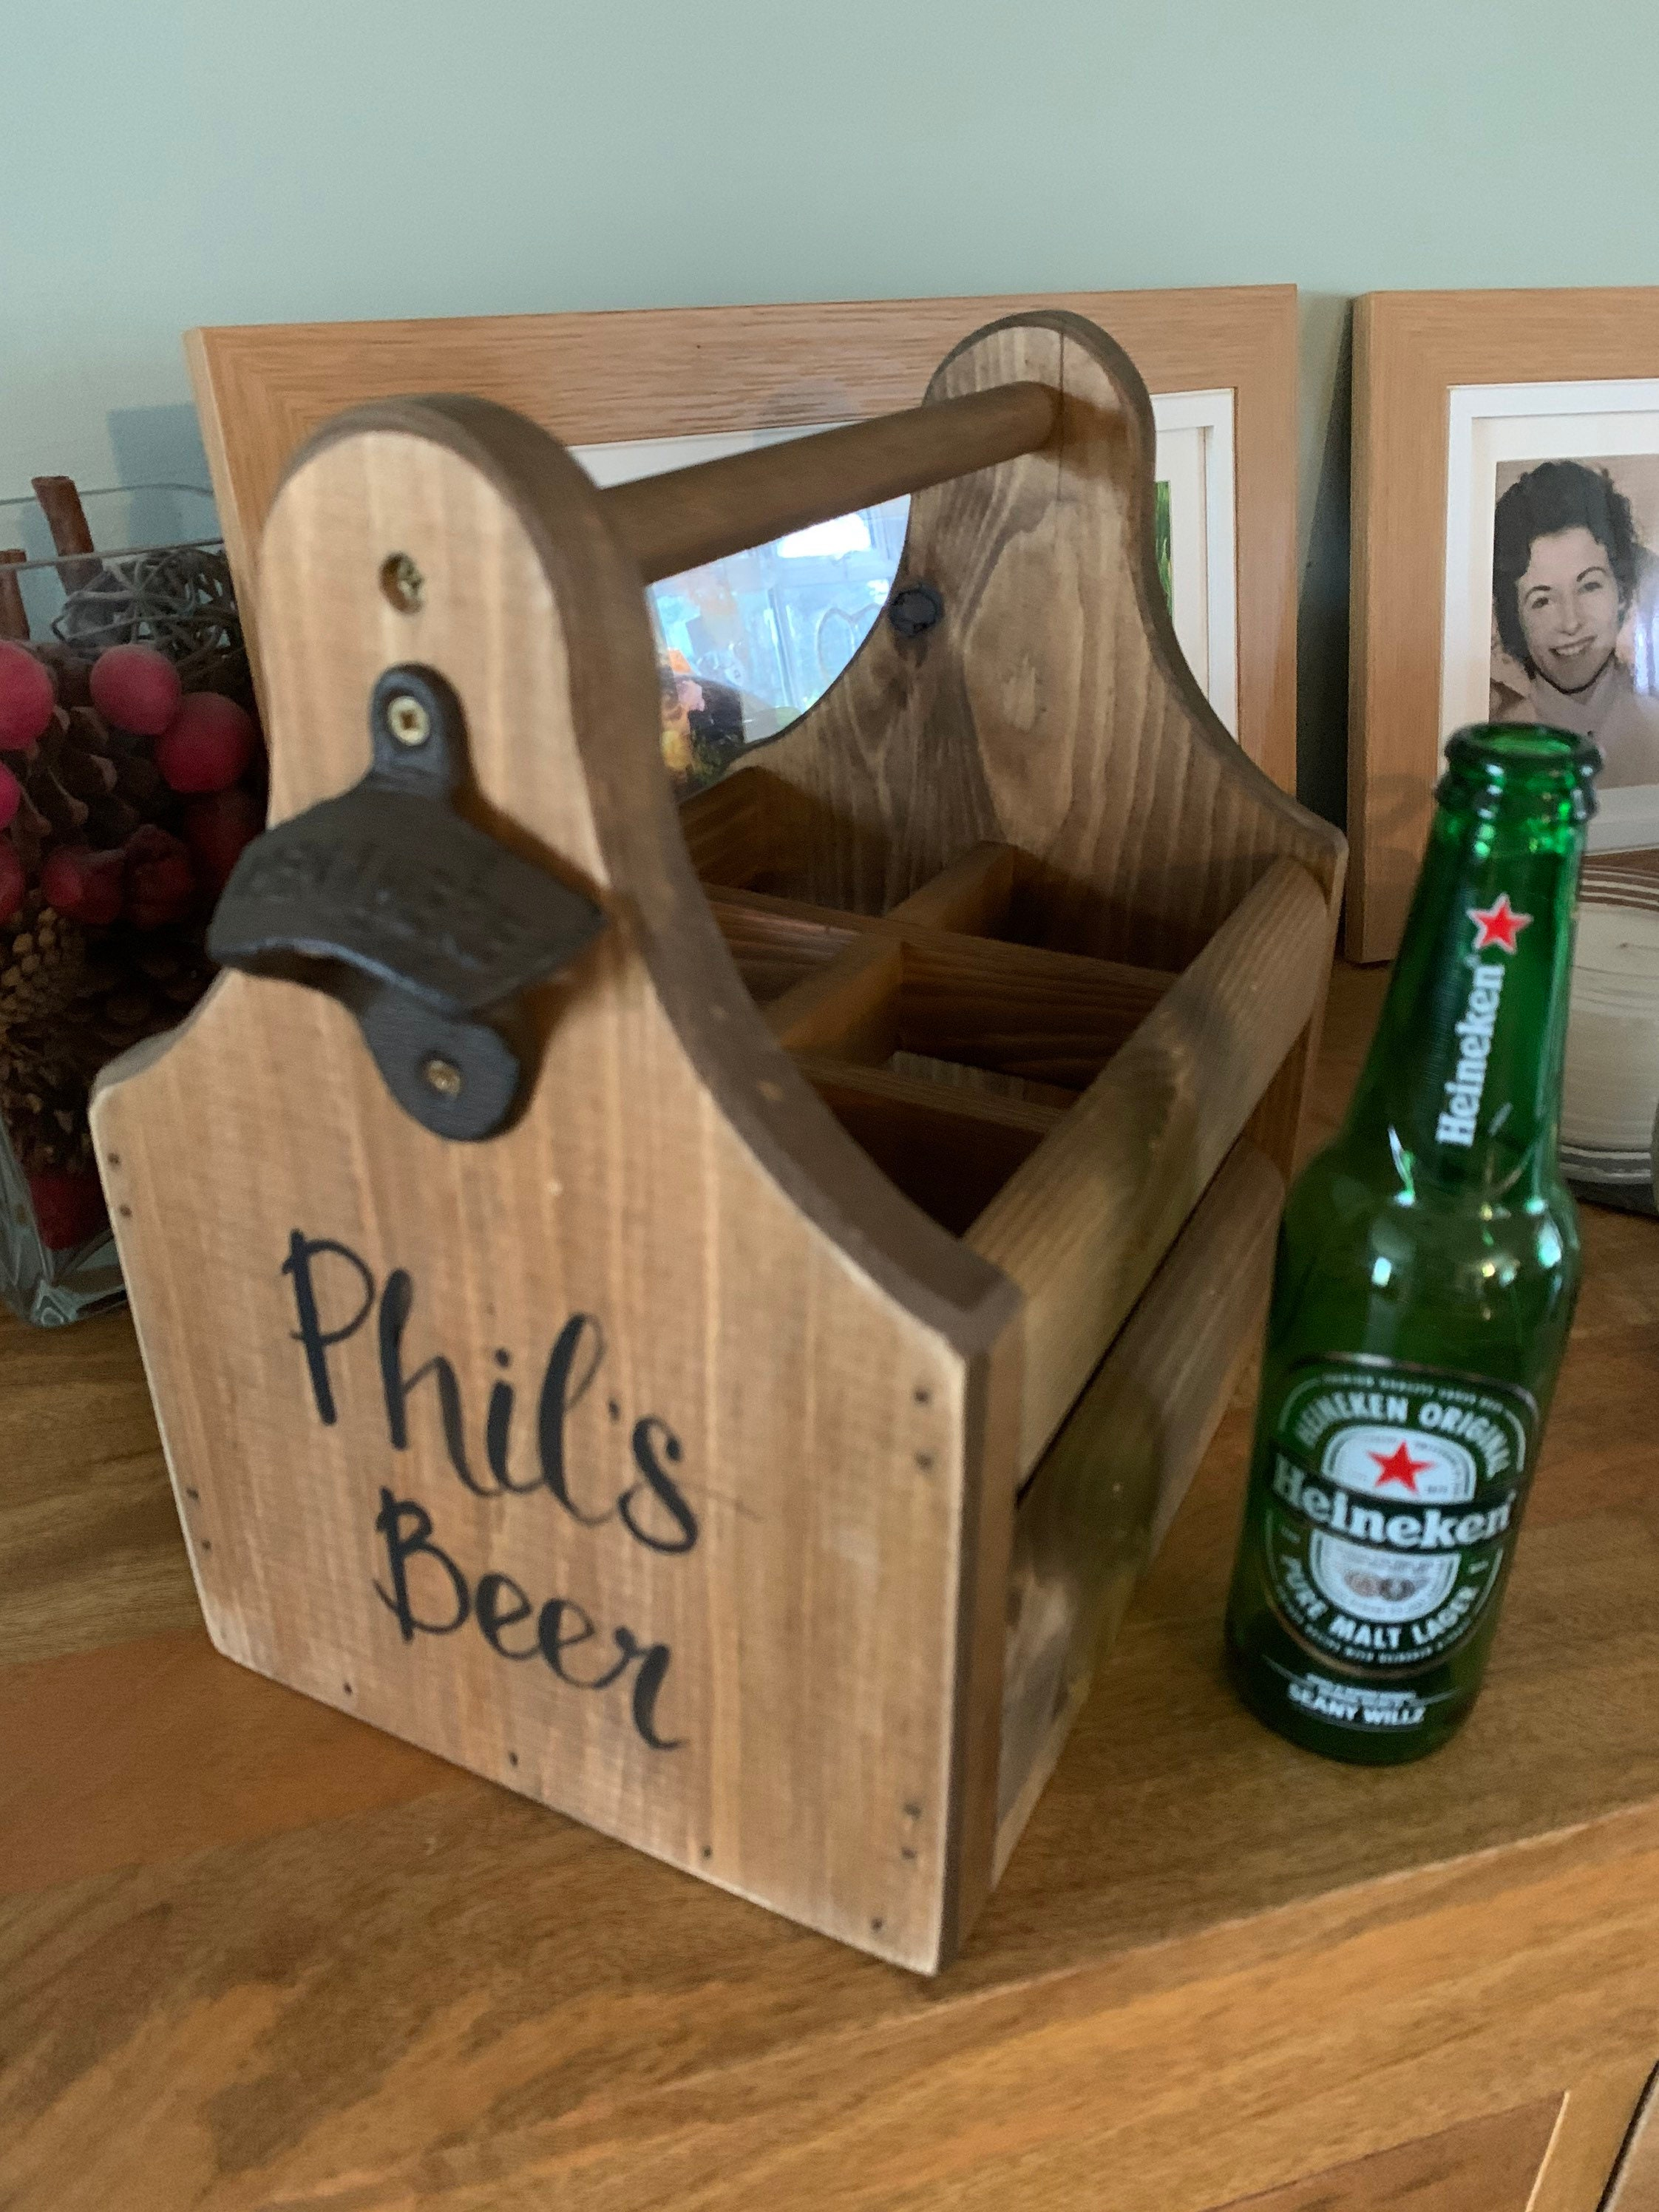 2 Wooden Six Pack Beer Caddies Personalized for Weddings and Gifts